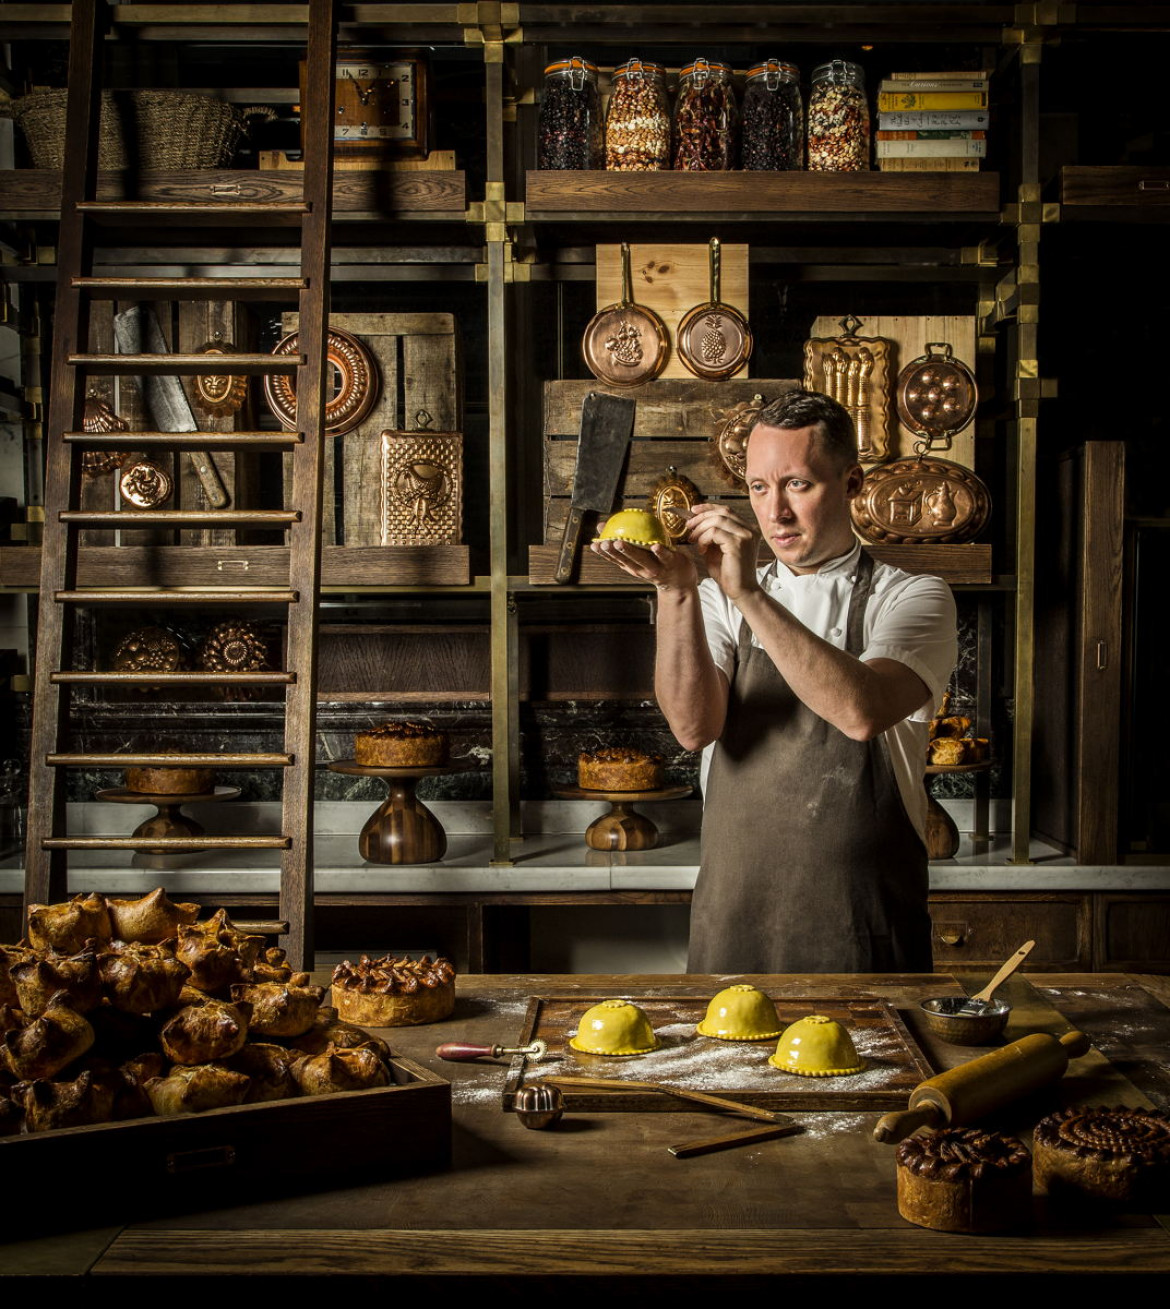 "fot. John Carey, ""Calun in his Pie Room"", 1. miejsce w kategorii The Philip Harben Award for Food in Action"